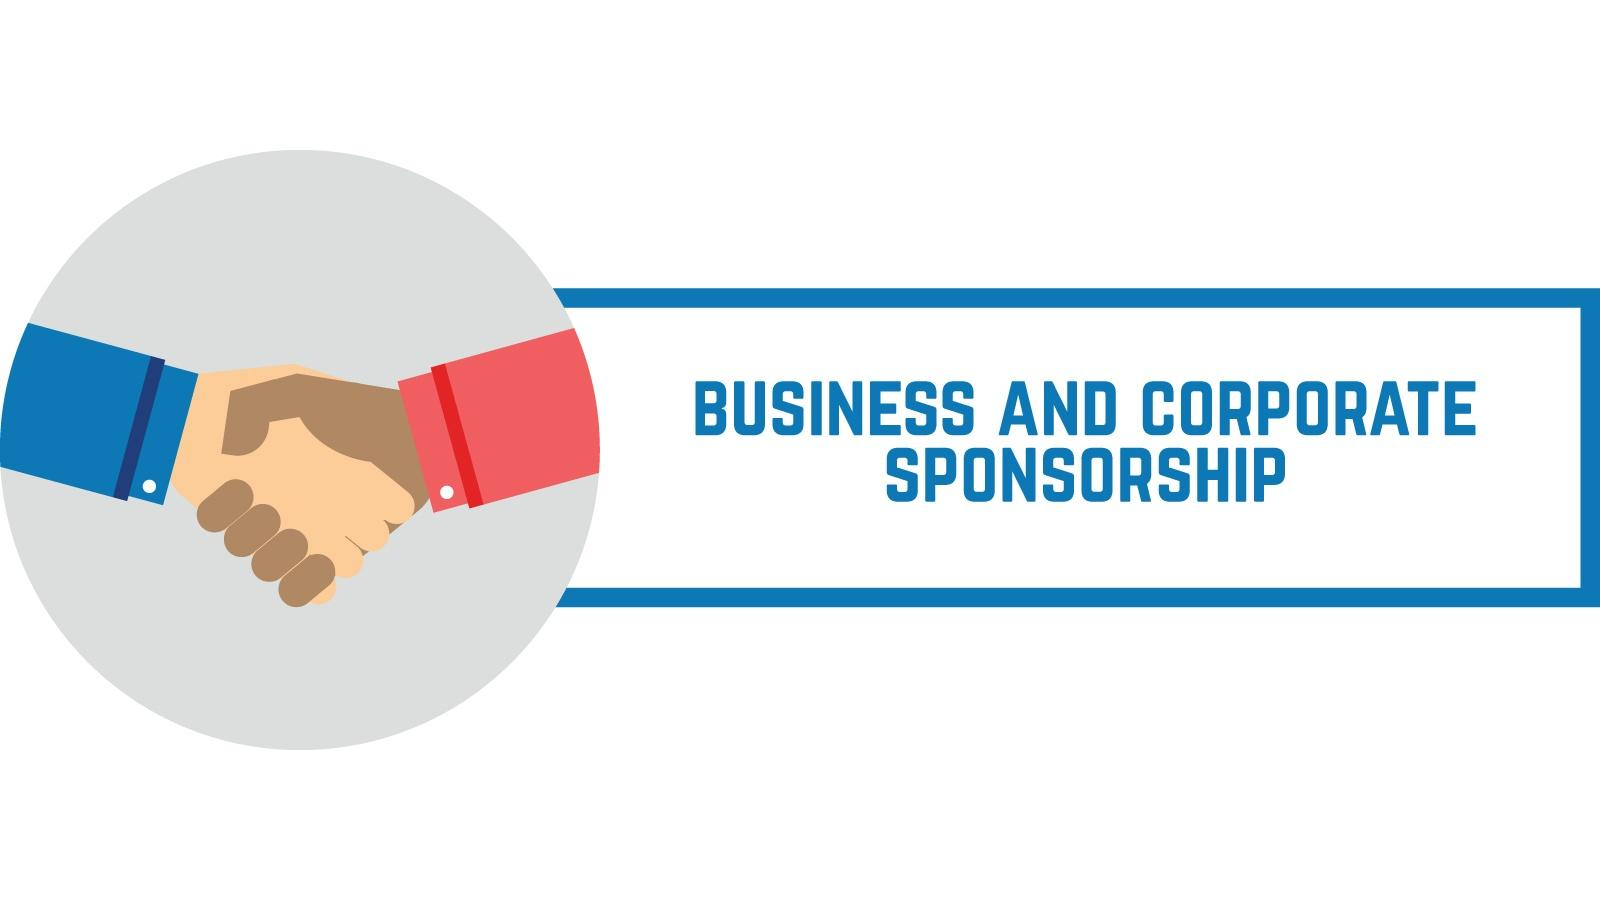 Business and Corporate Sponsorship